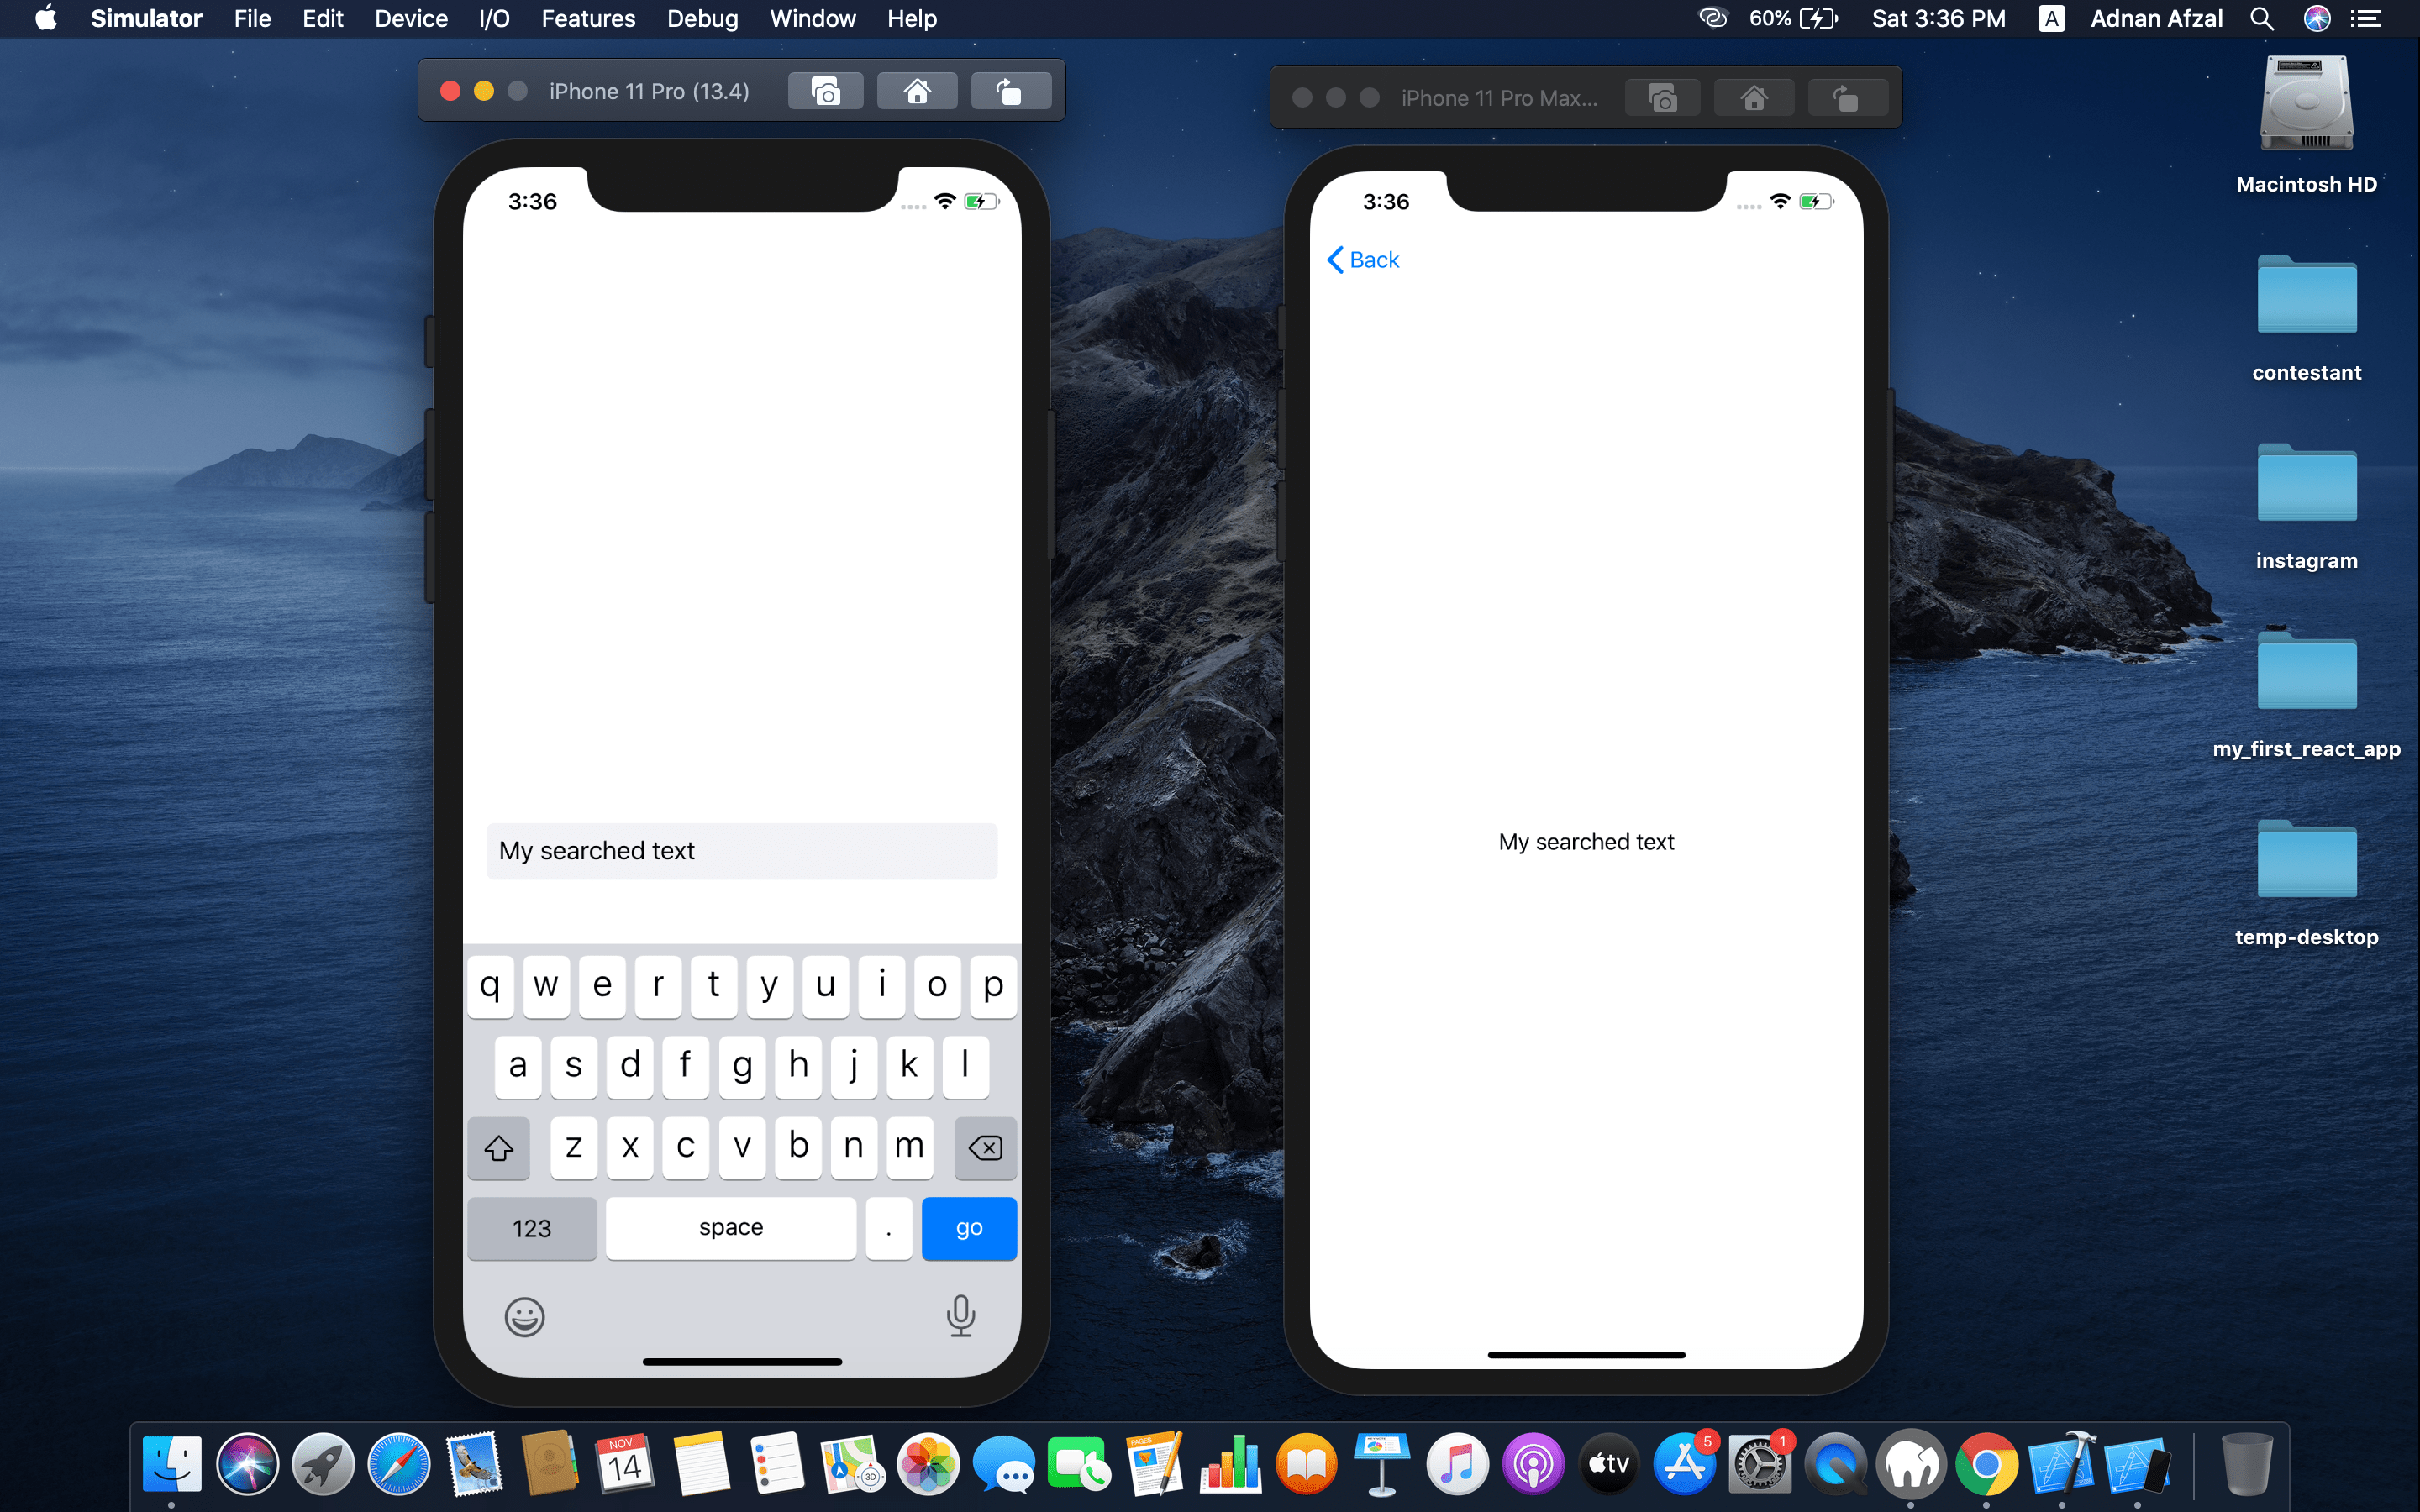 Send value from one view to another - Swift UI